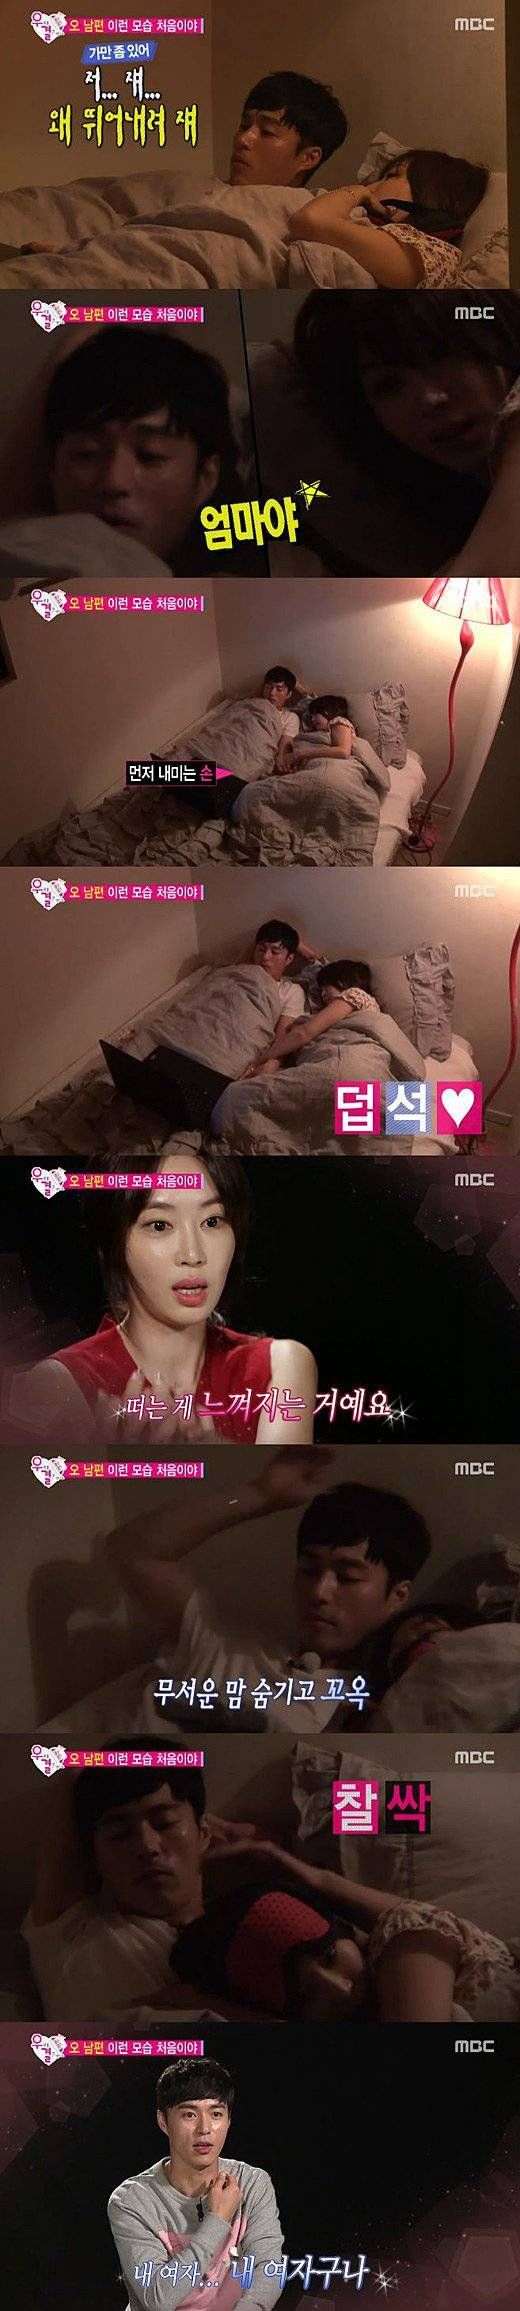 Oh Min Suk and Kang Ye Won cuddle up for a scary movie on 'We Got Married' | http://www.allkpop.com/article/2015/08/oh-min-suk-and-kang-ye-won-cuddle-up-for-a-scary-movie-on-we-got-married